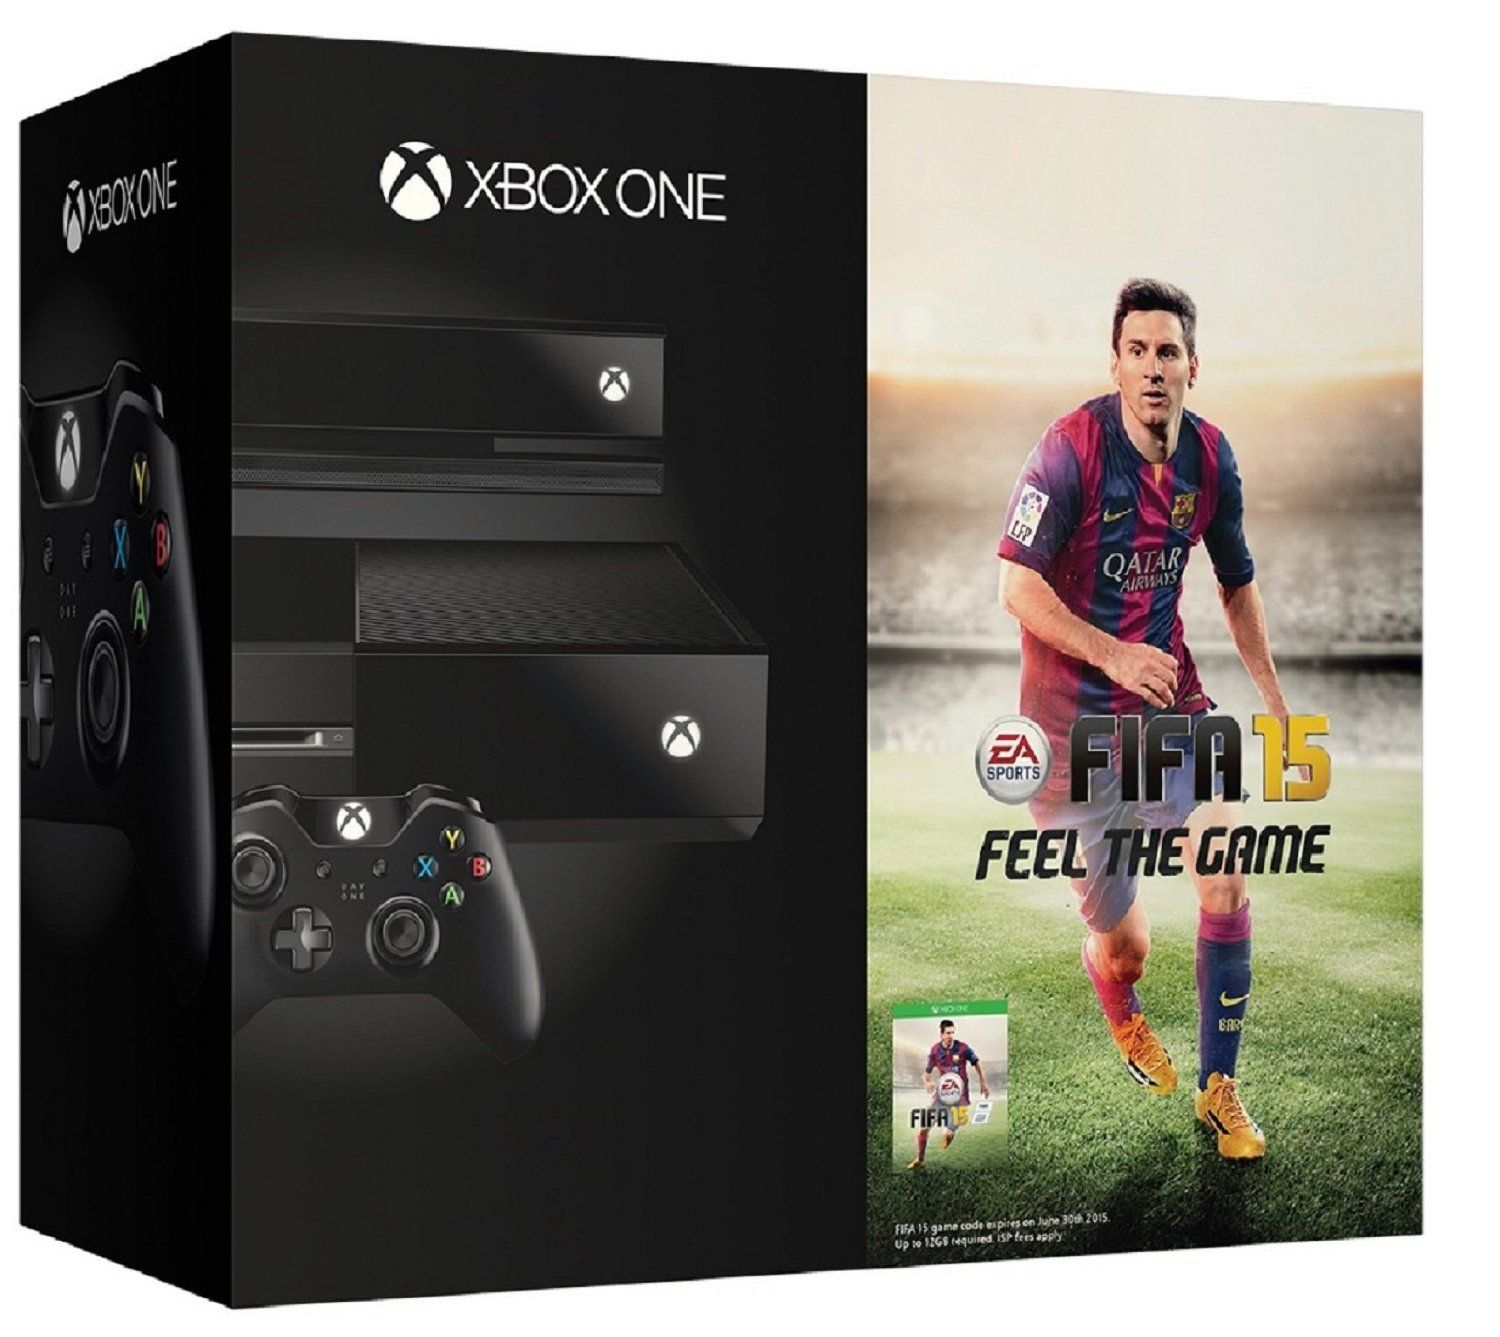 Xbox One Console With Kinect Day Edition Free Games Fifa 15 Hp Slate 7 Voicetab 16 Gb 3g Silver